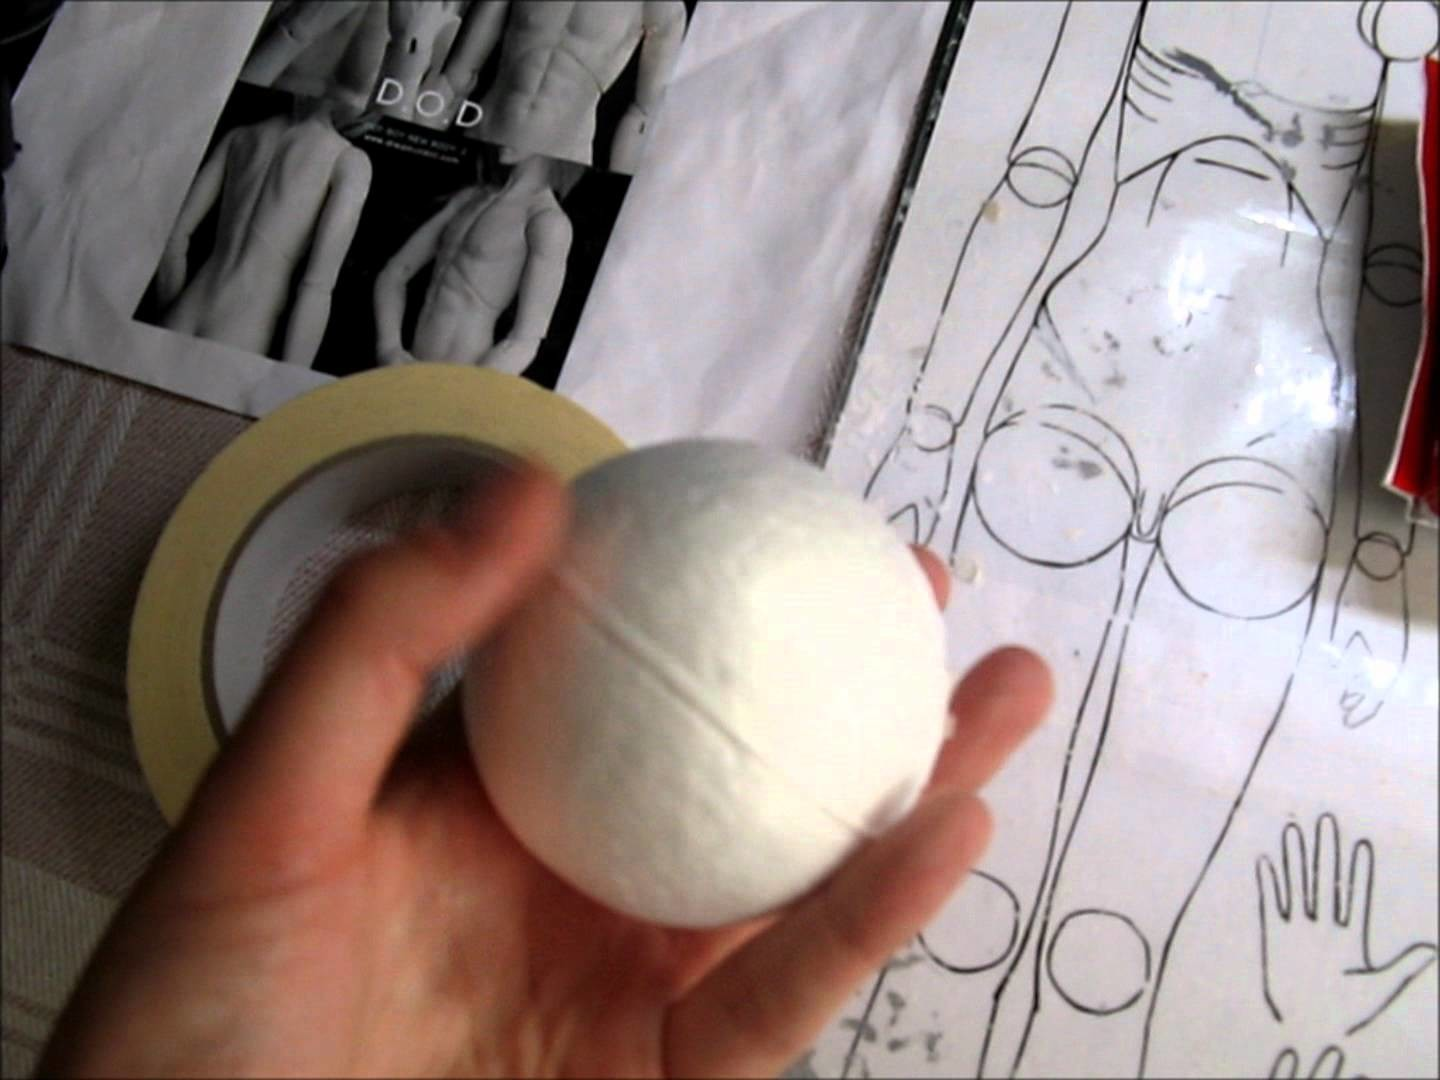 Making your own BJD - Where to start